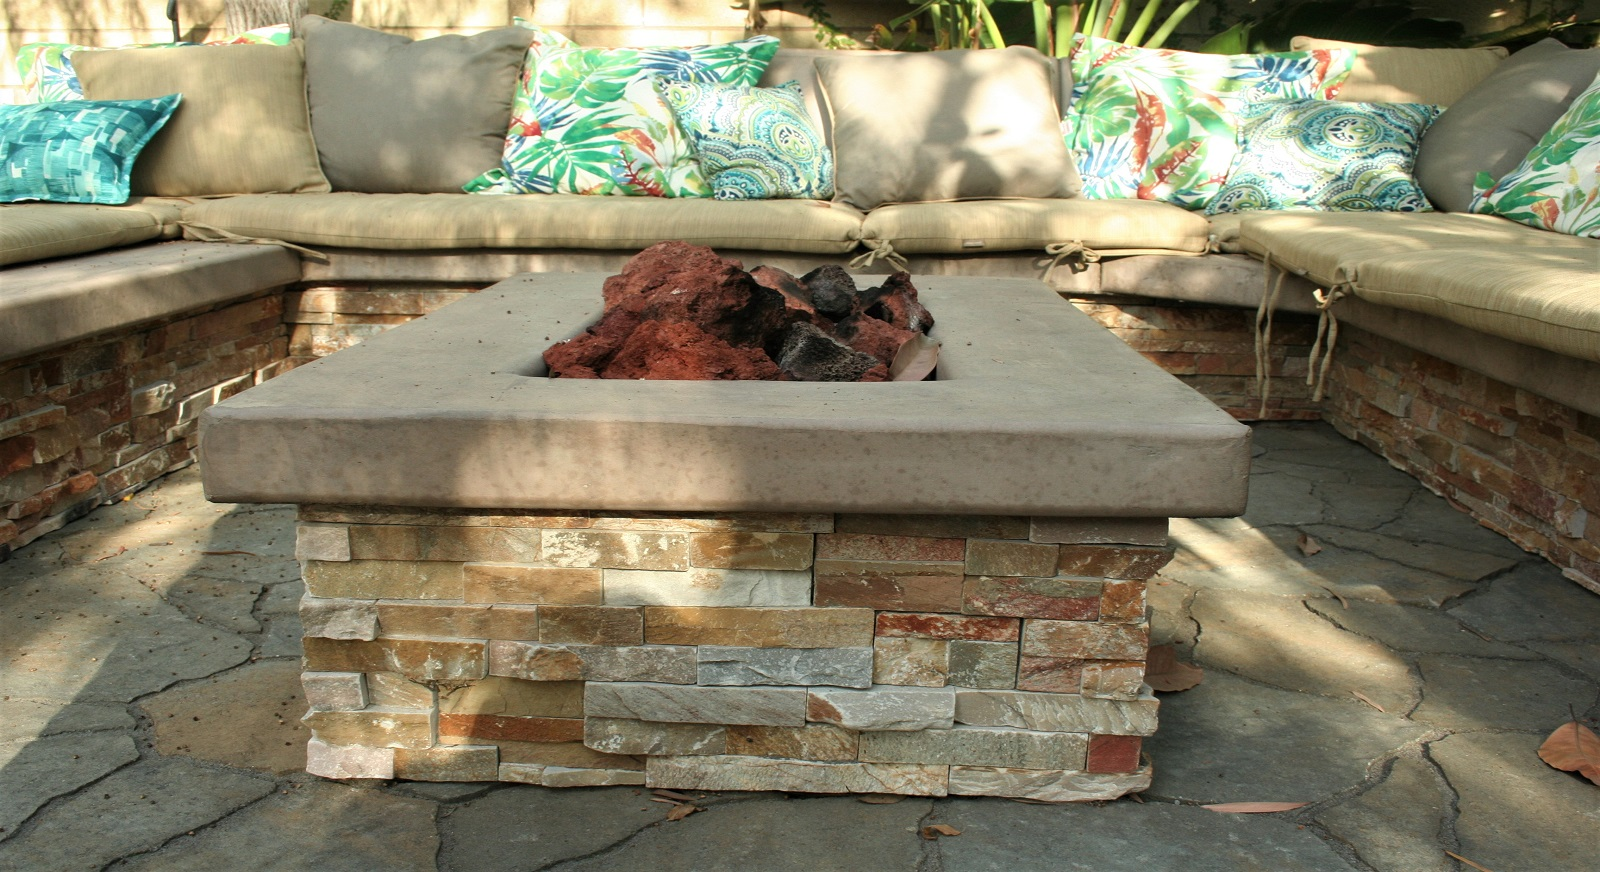 cross construction remodel landscape outdoor seating fire element stone